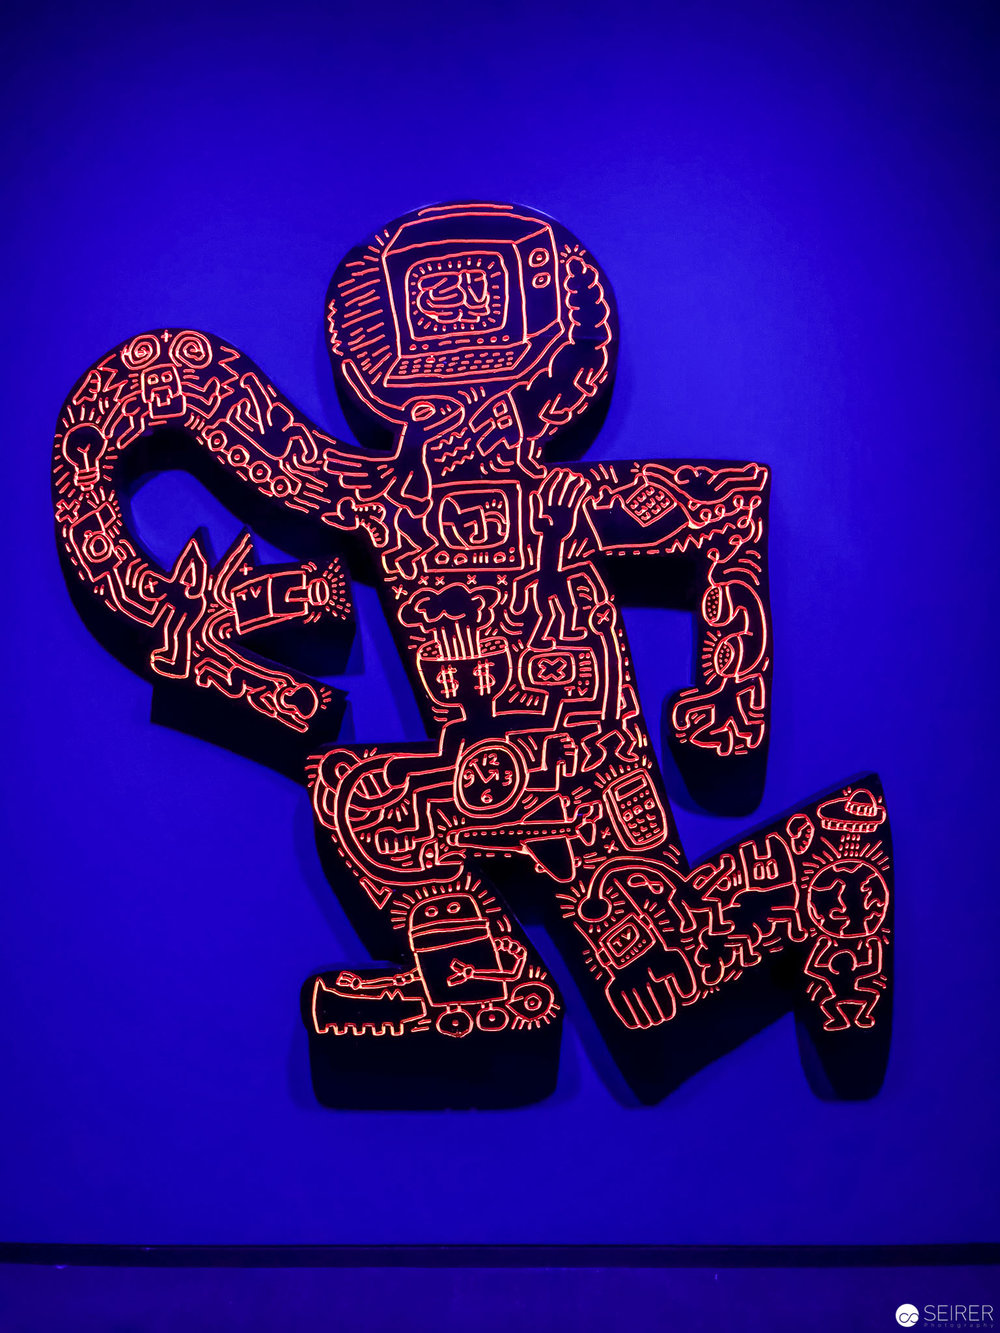 Keith Haring. The Alphabet exhibition at Albertina